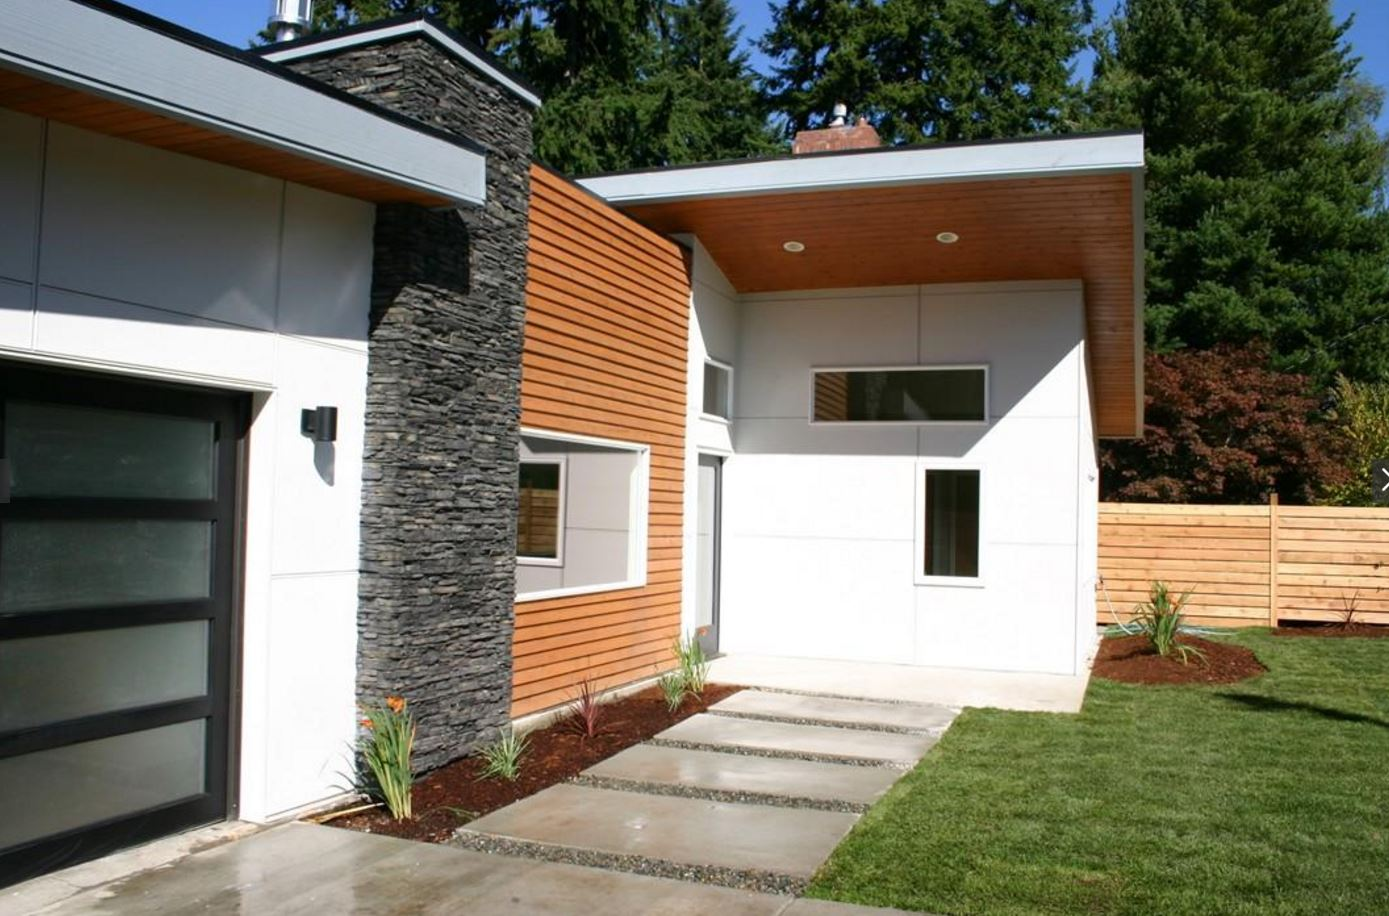 North Seattle Complete Renovation View 2